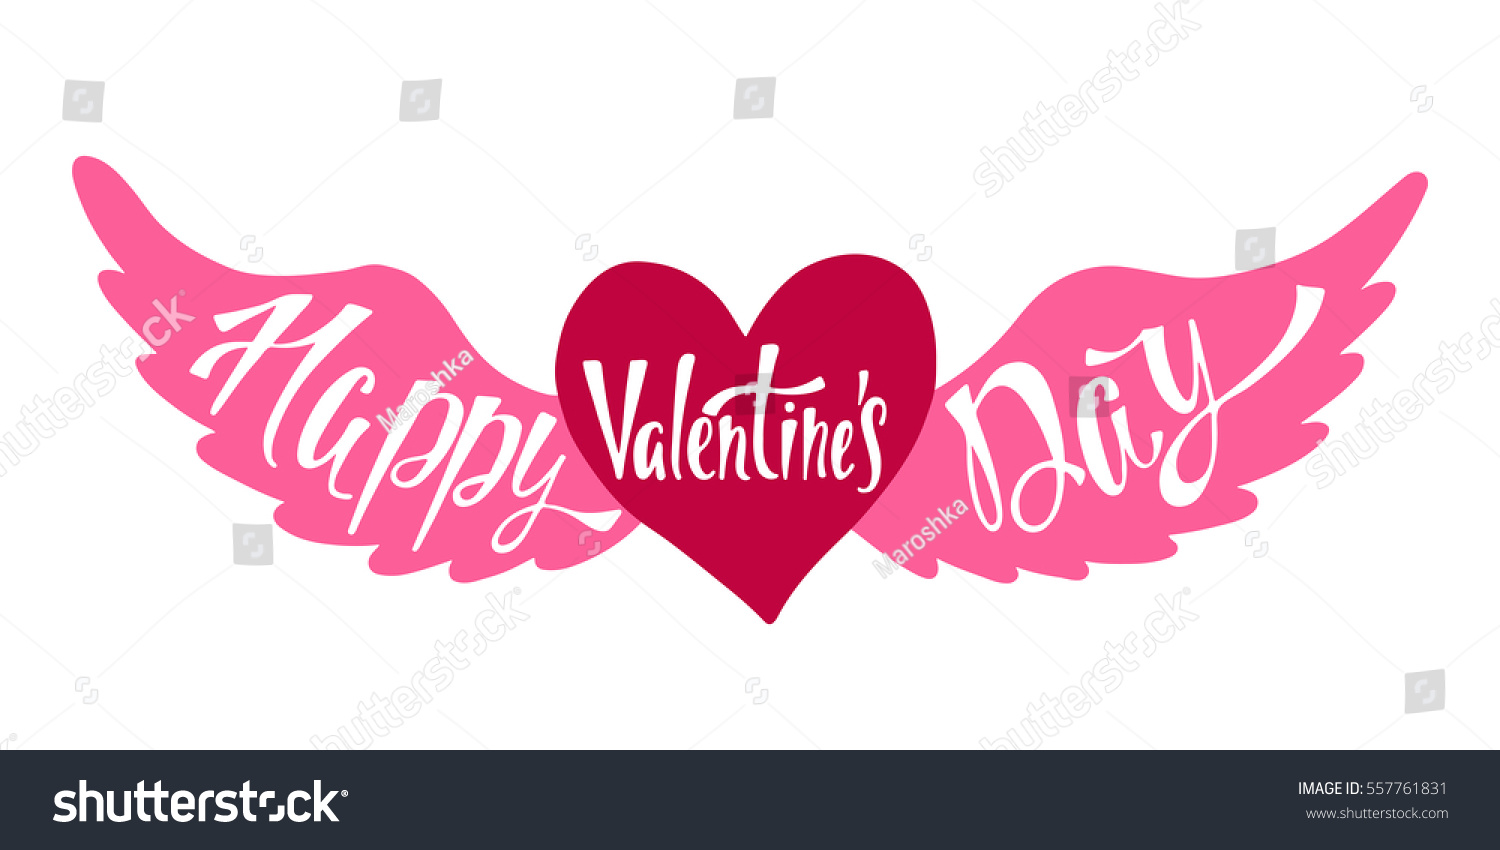 Happy Valentines Day Banner Handwritten Vector Stock Vector Royalty